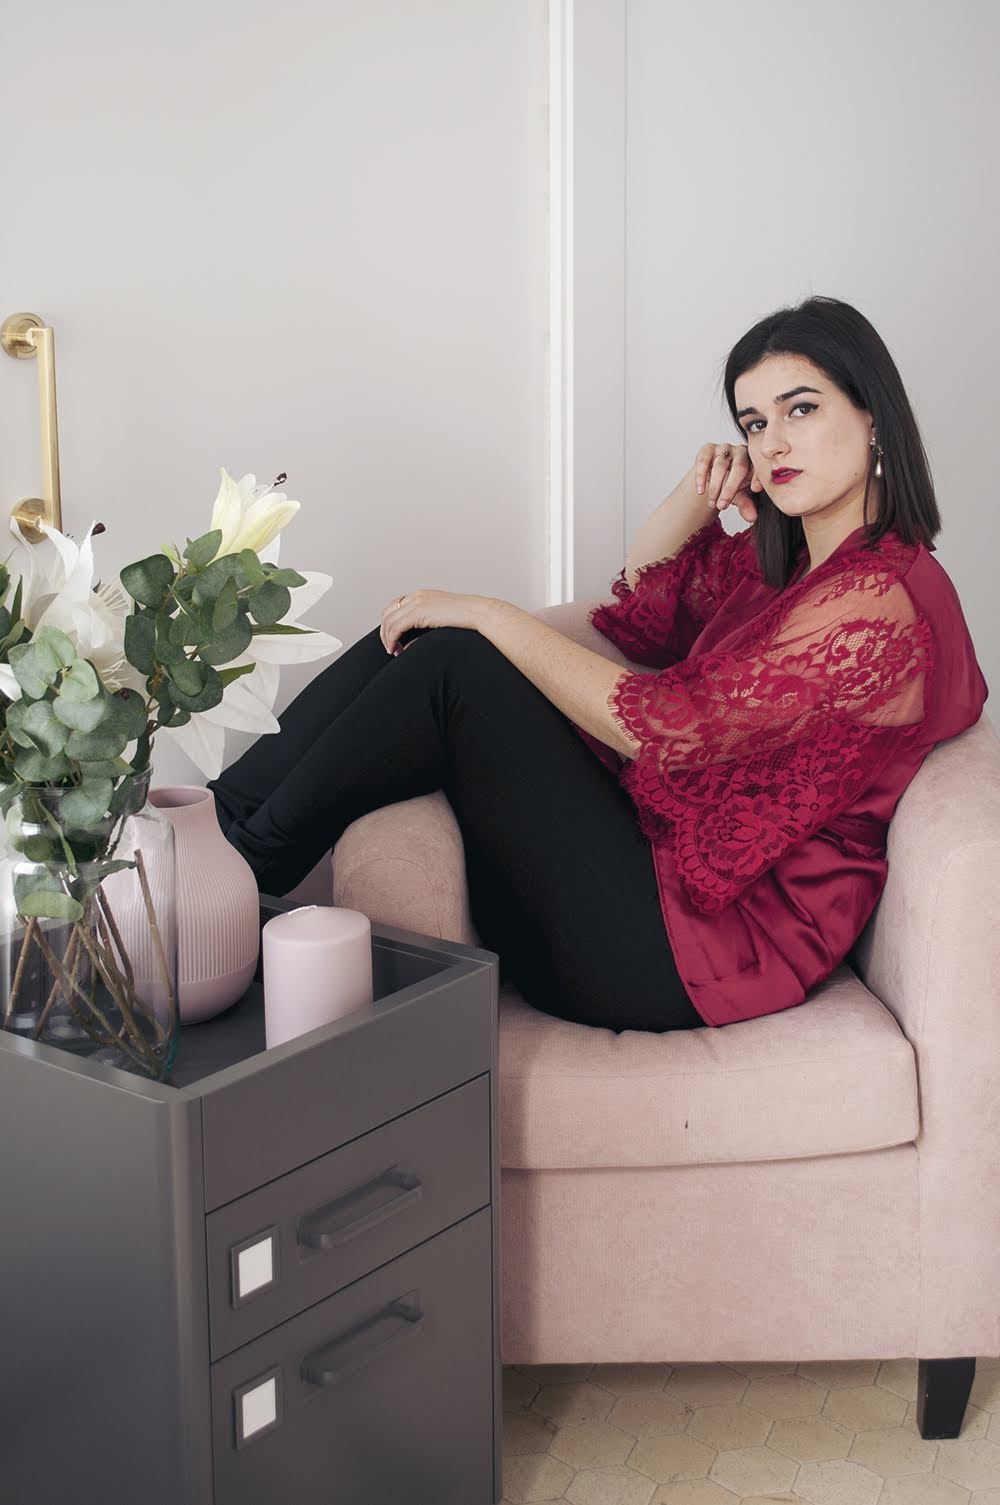 hunkemöller spain blogger somethingfashion, amanda ramon kimono, red satin lace valentine's day outfit idea, gifts lingerie, valenciabloggers